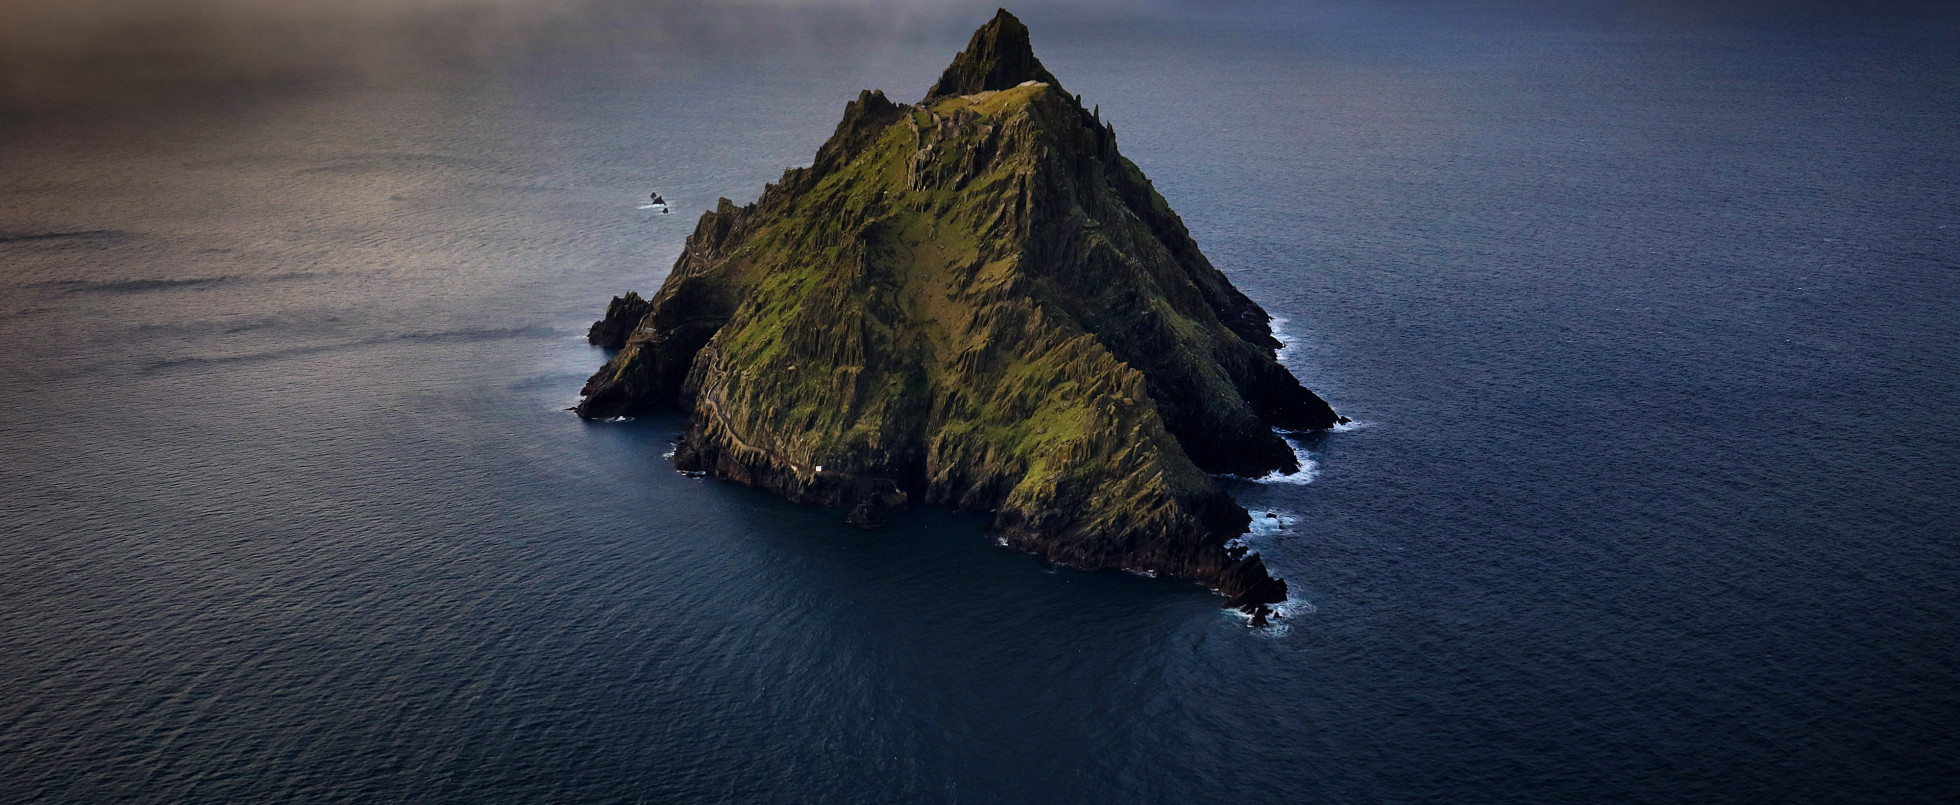 Skellig Michael: Home of Luke Skywalker